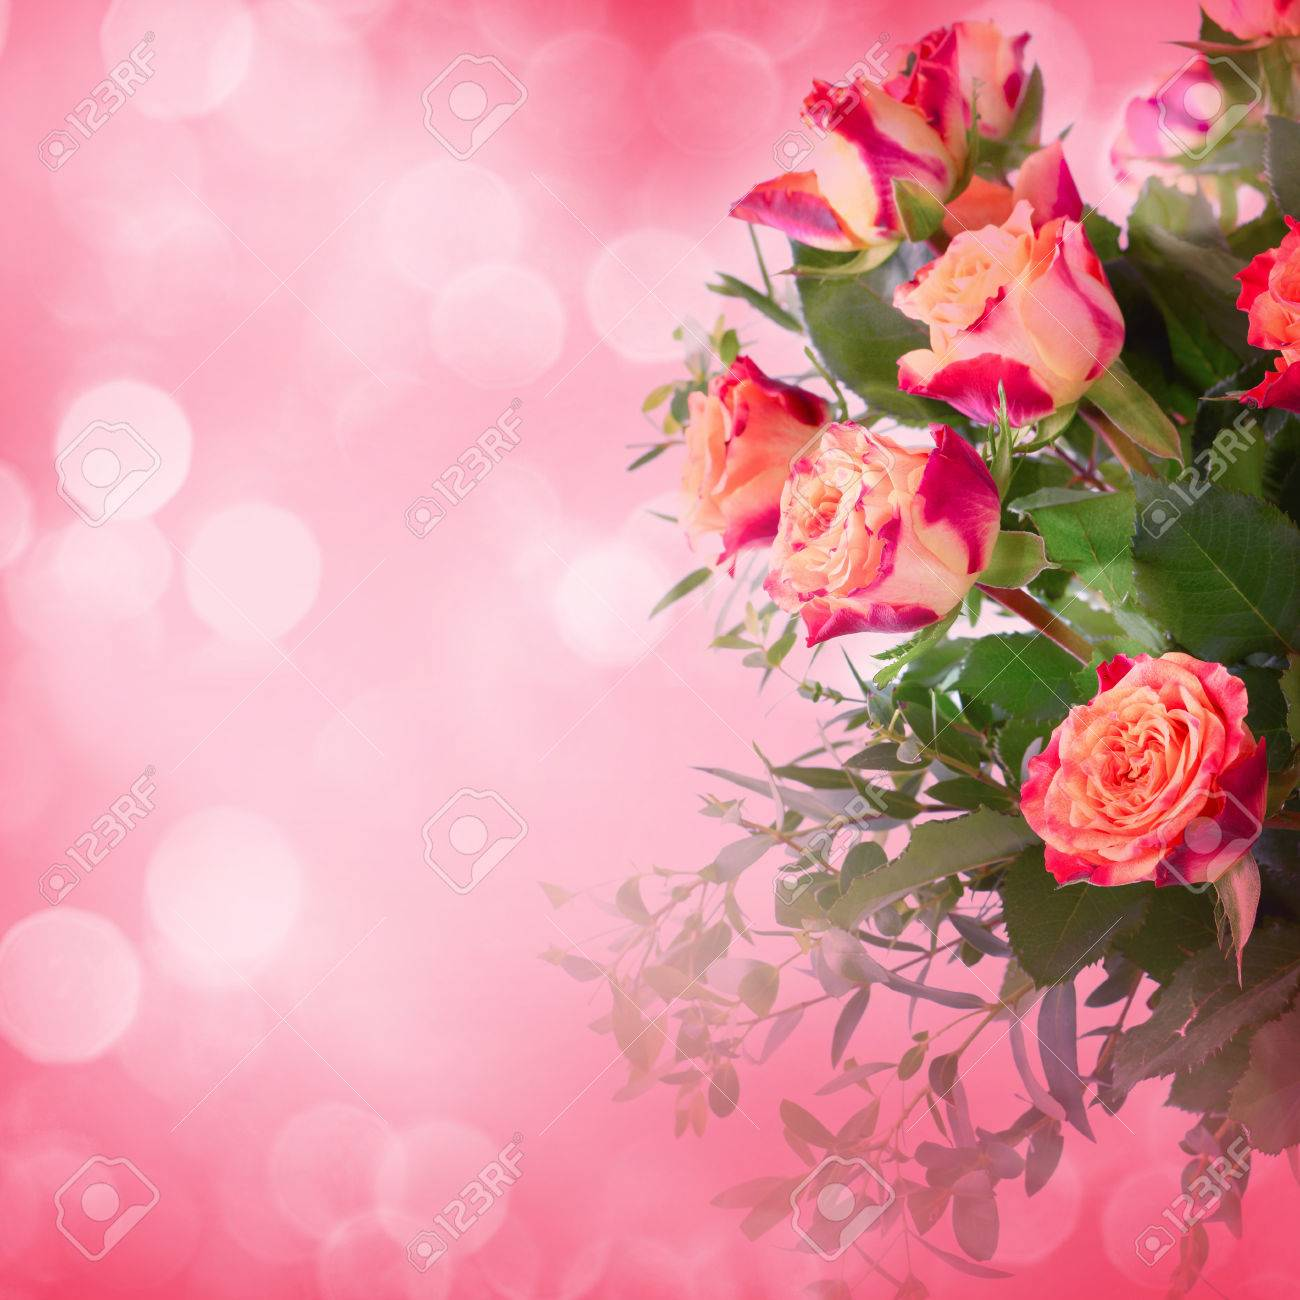 Bouquet of roses on romantic background - 43347603